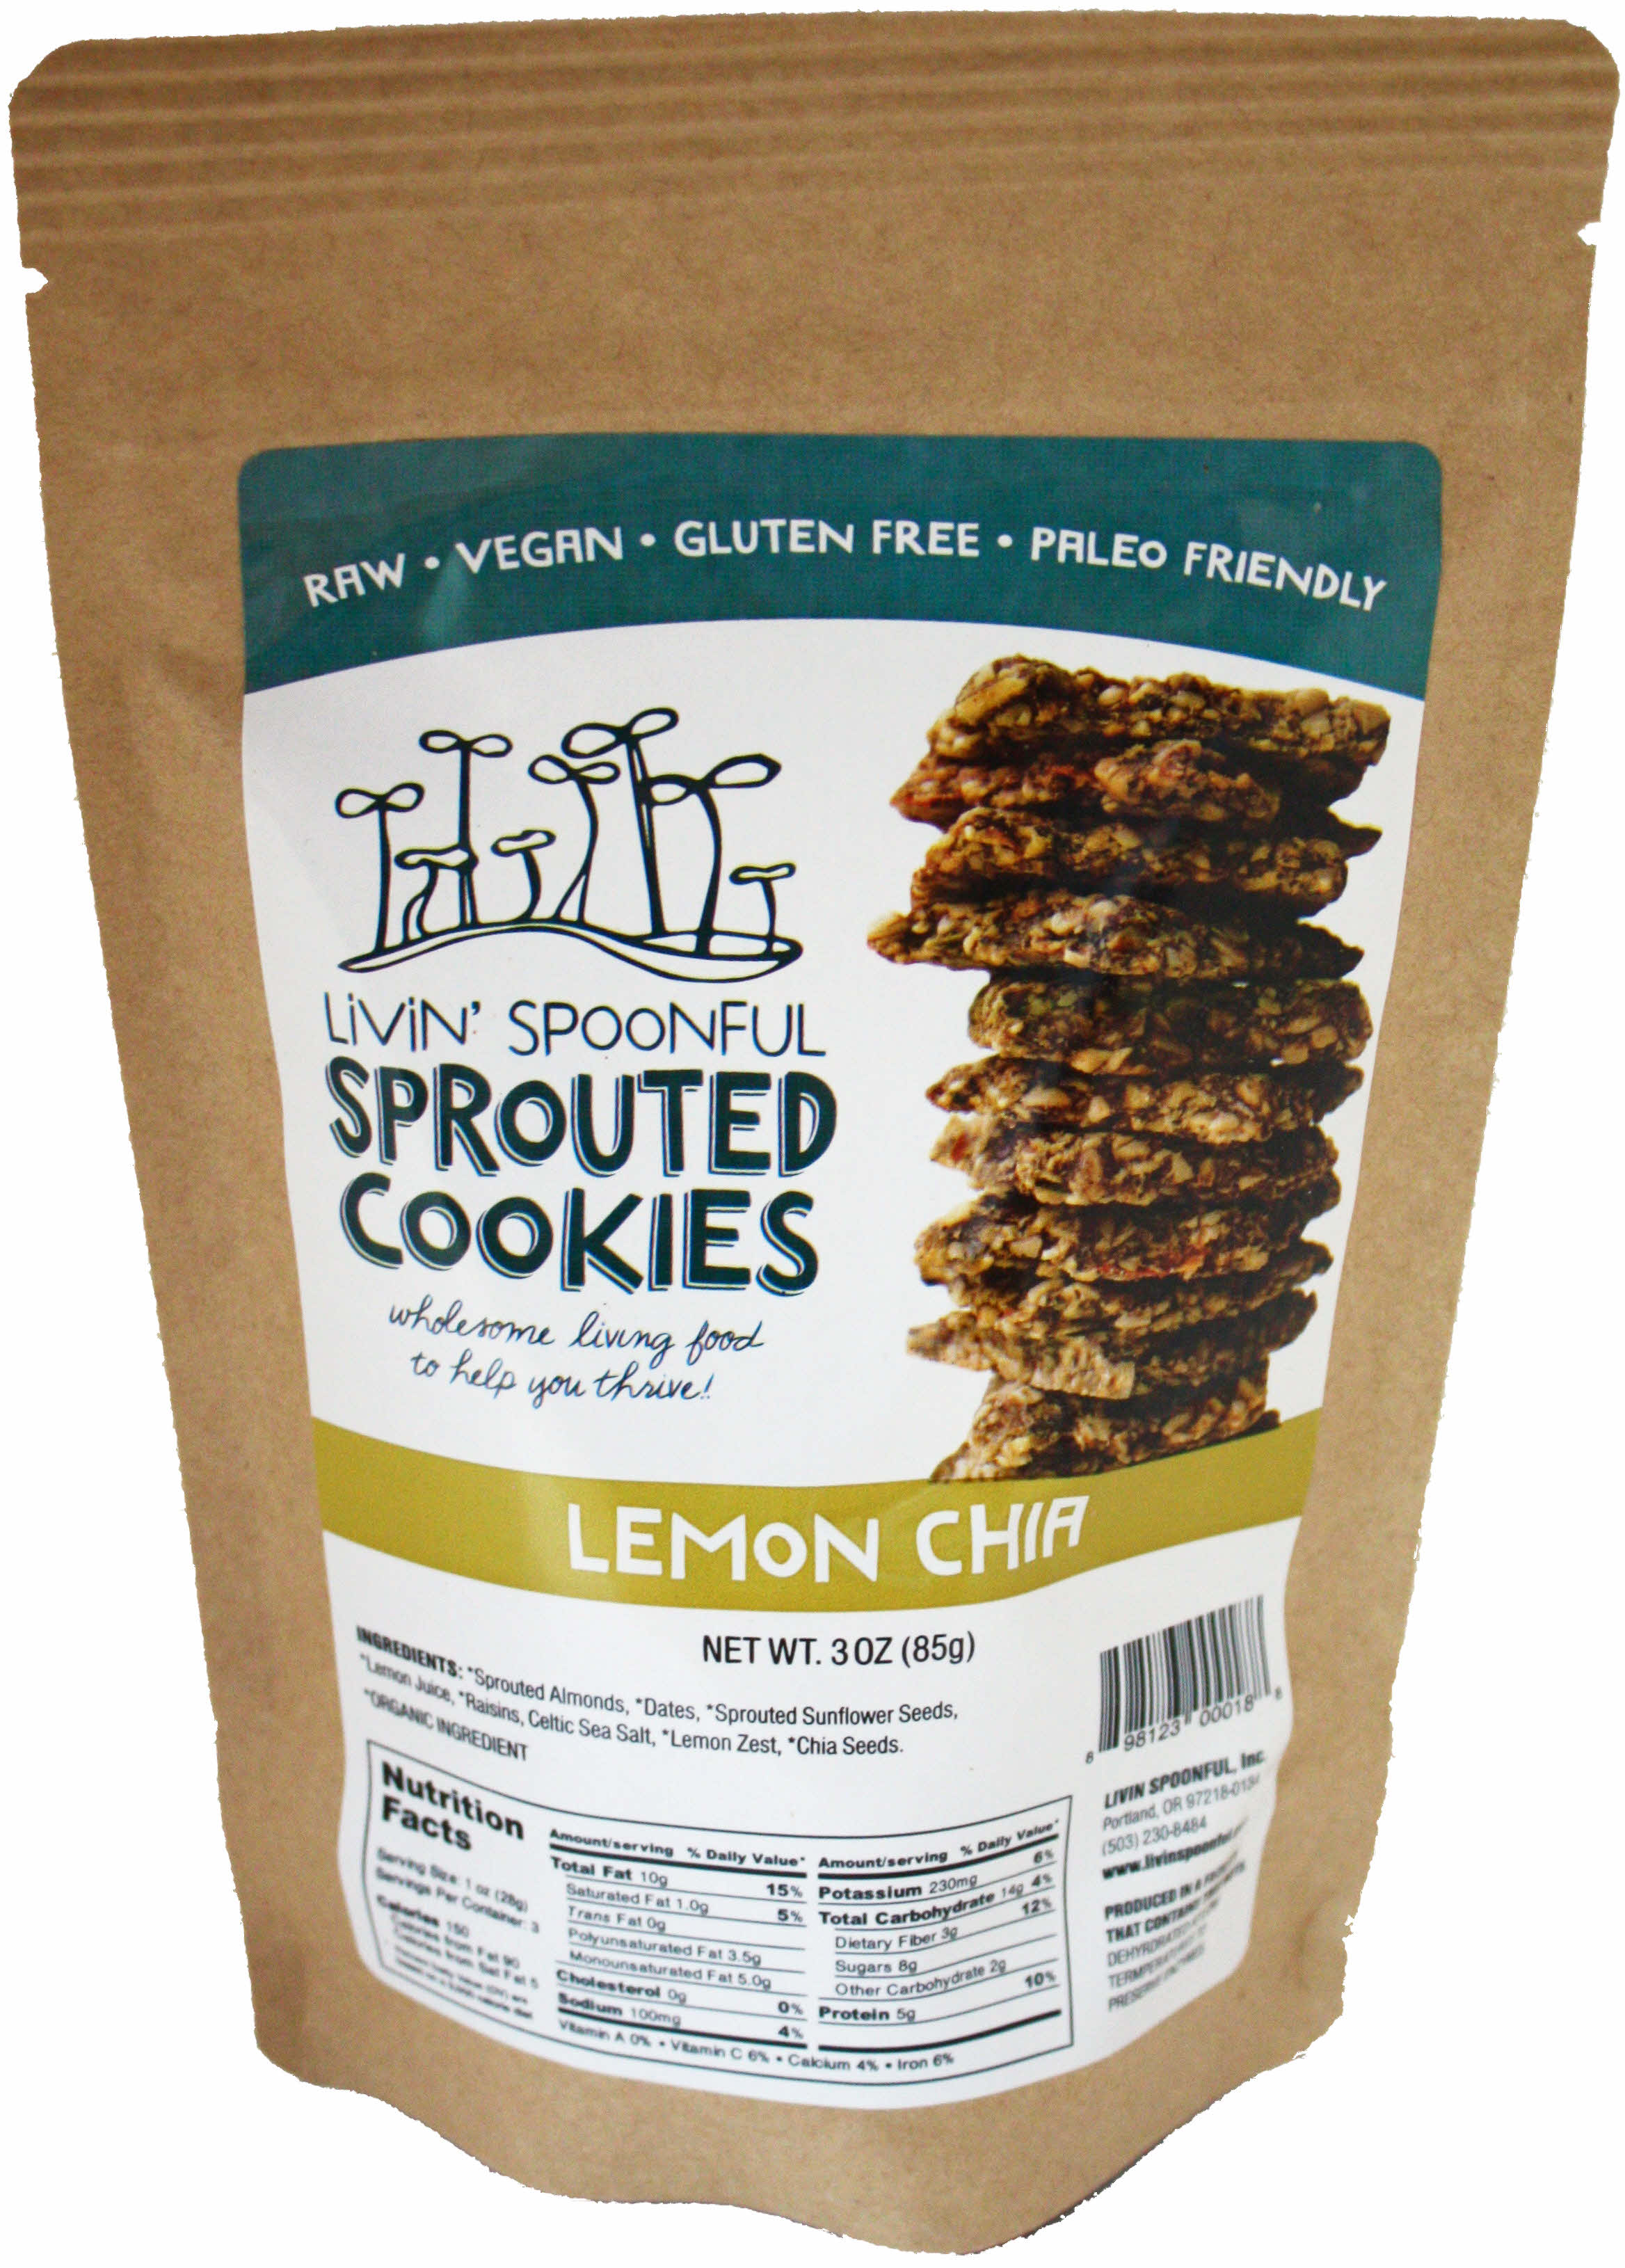 Livin' Spoonful Sprouted Lemon Chia Cookies